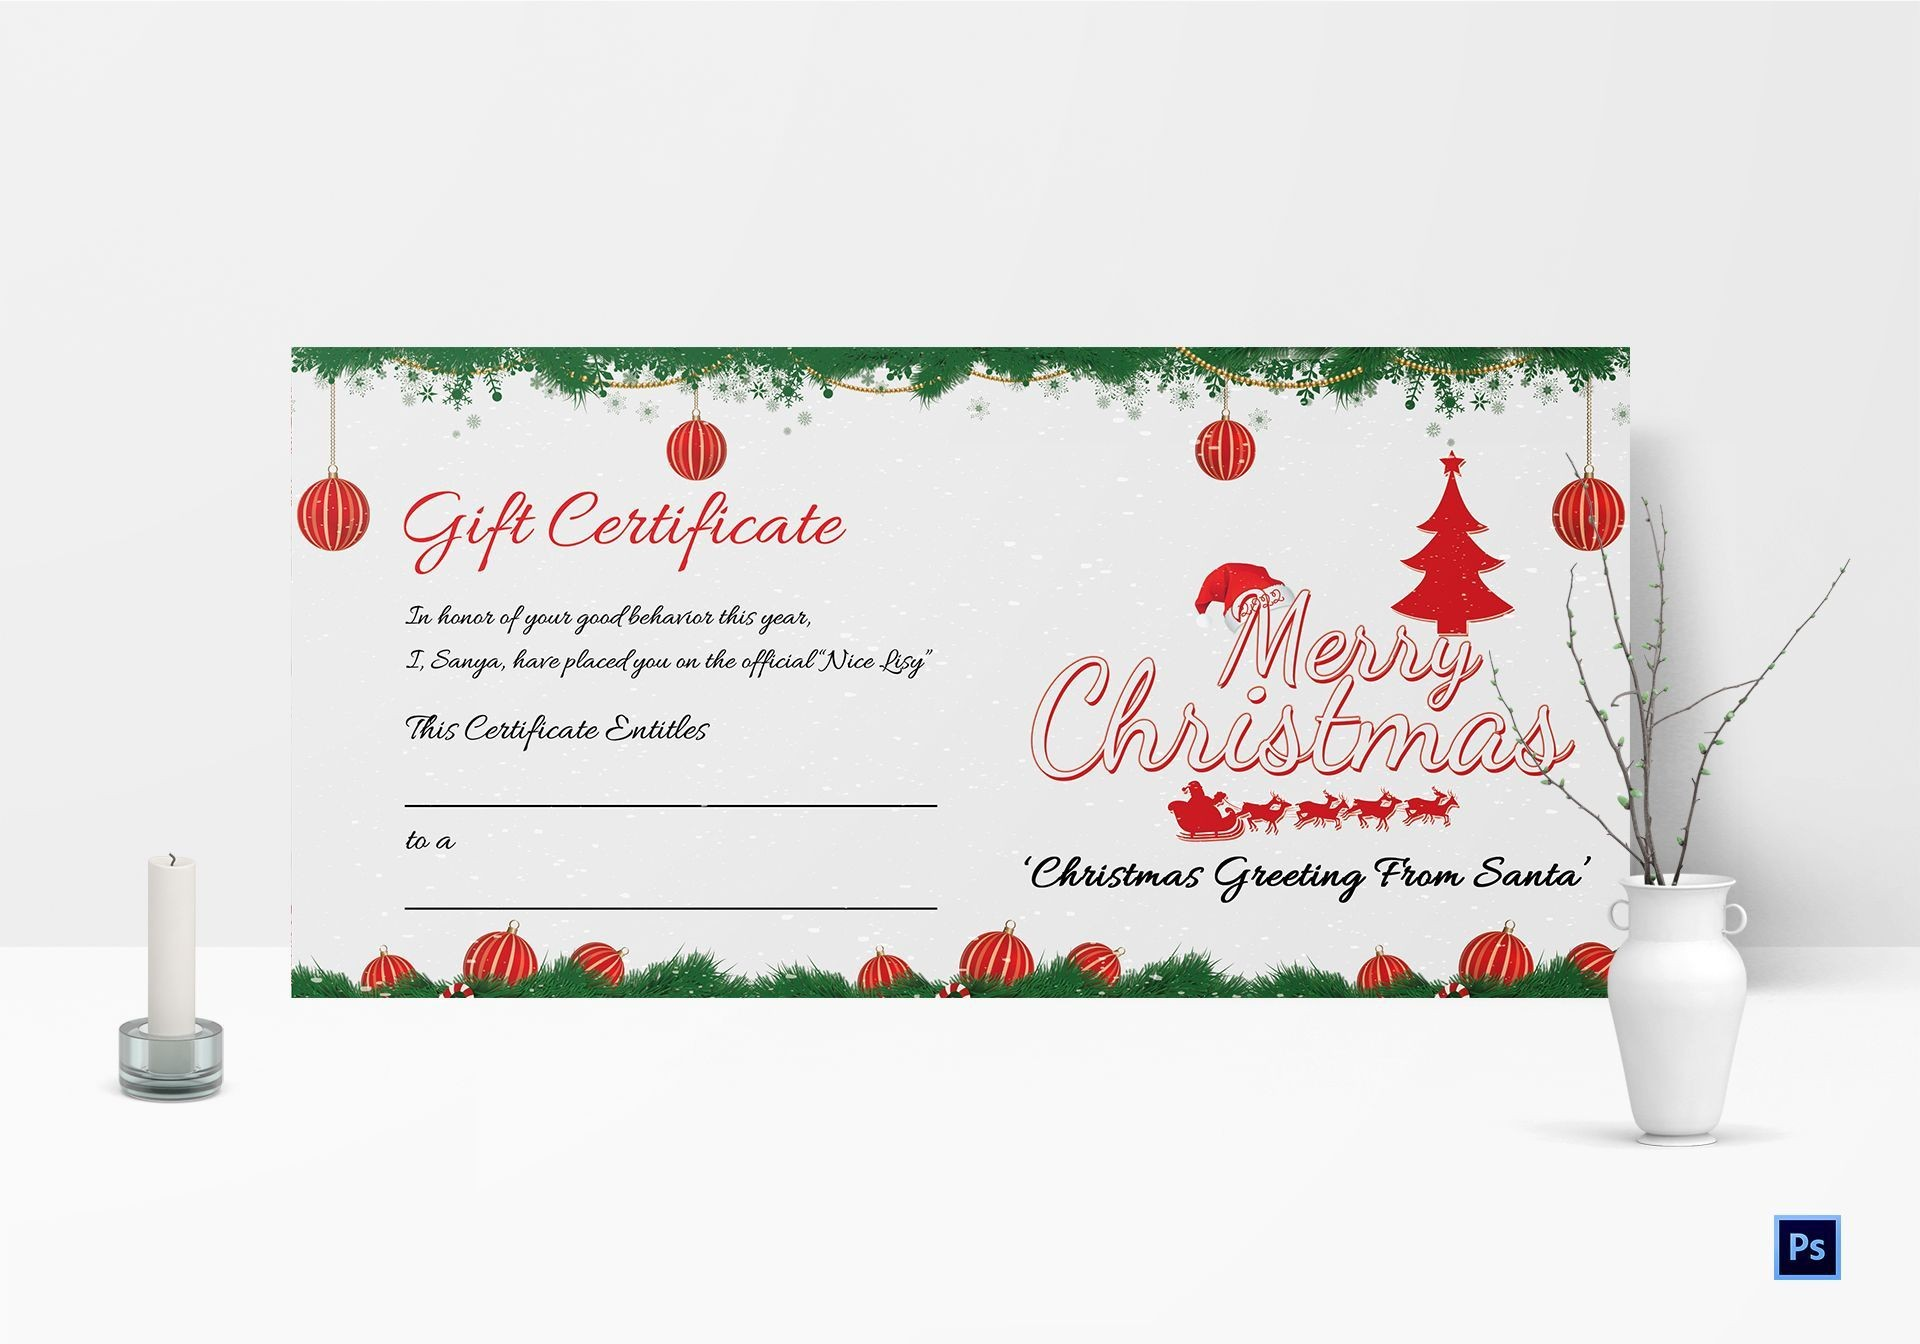 008 Excellent Printable Gift Certificate Template Concept  Card Free Christma Massage1920